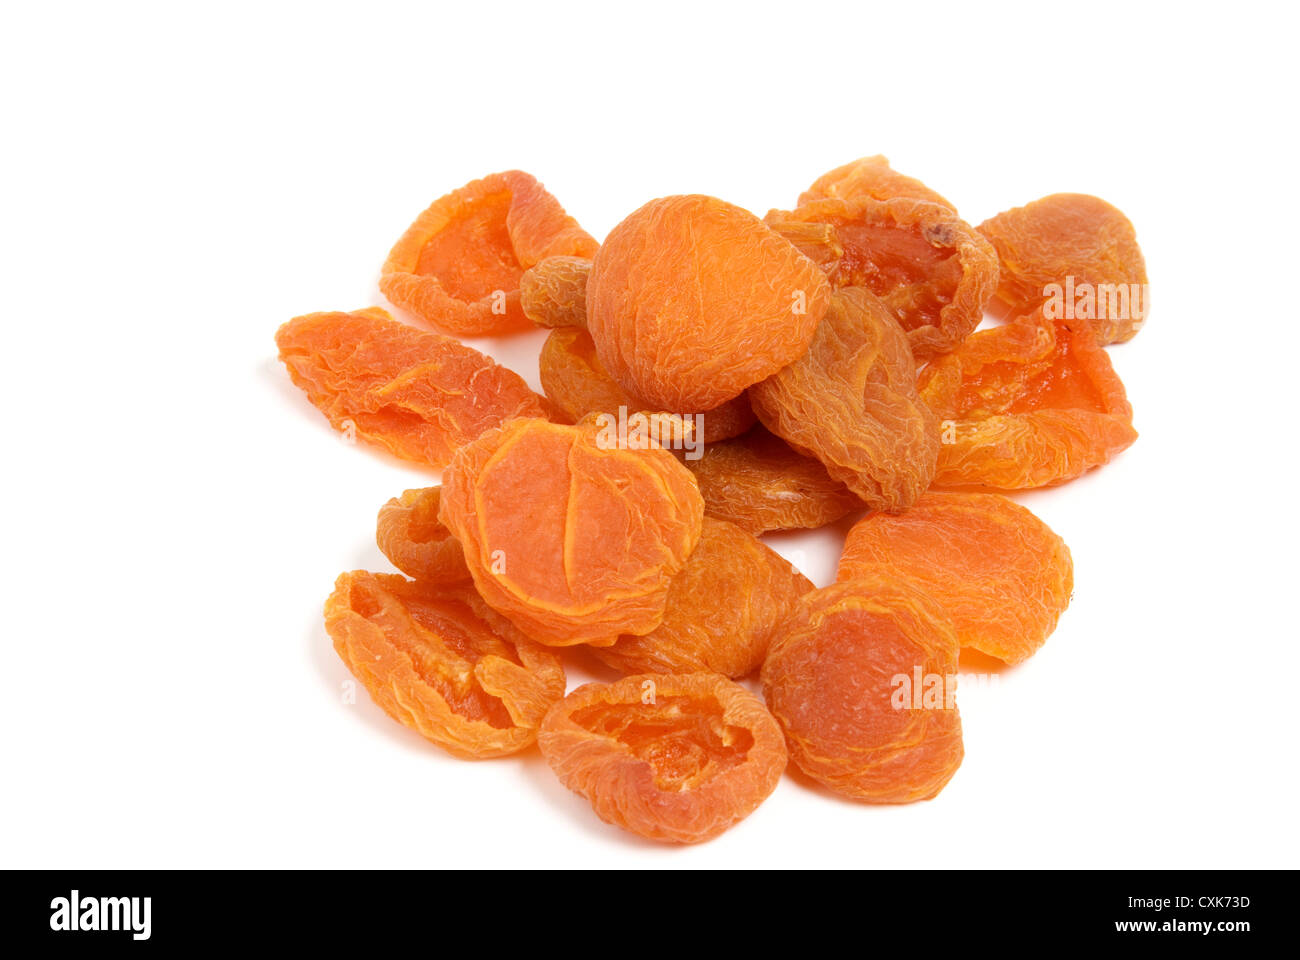 Dried Apricots on white background. - Stock Image